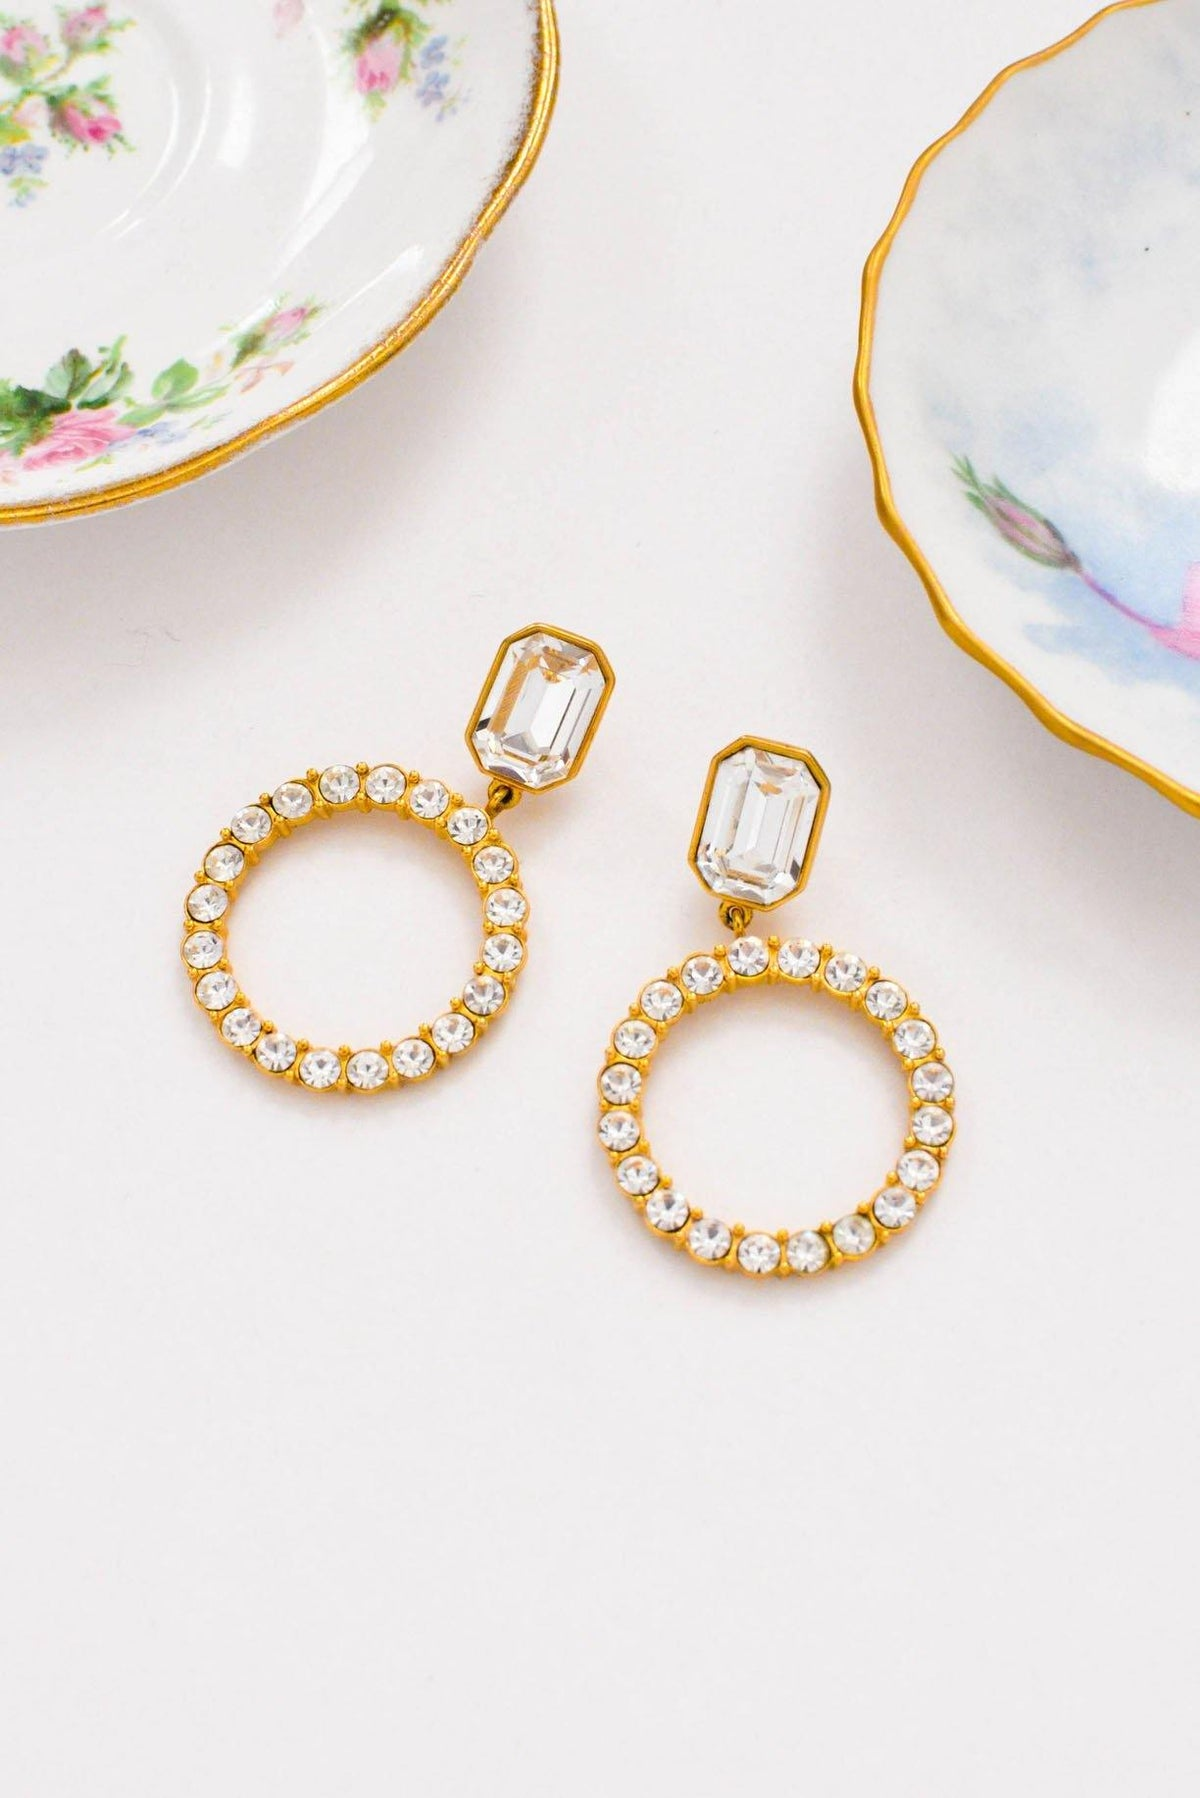 Vintage Statement Rhinestone Drop Hoop Pierced Earrings from Sweet and Spark